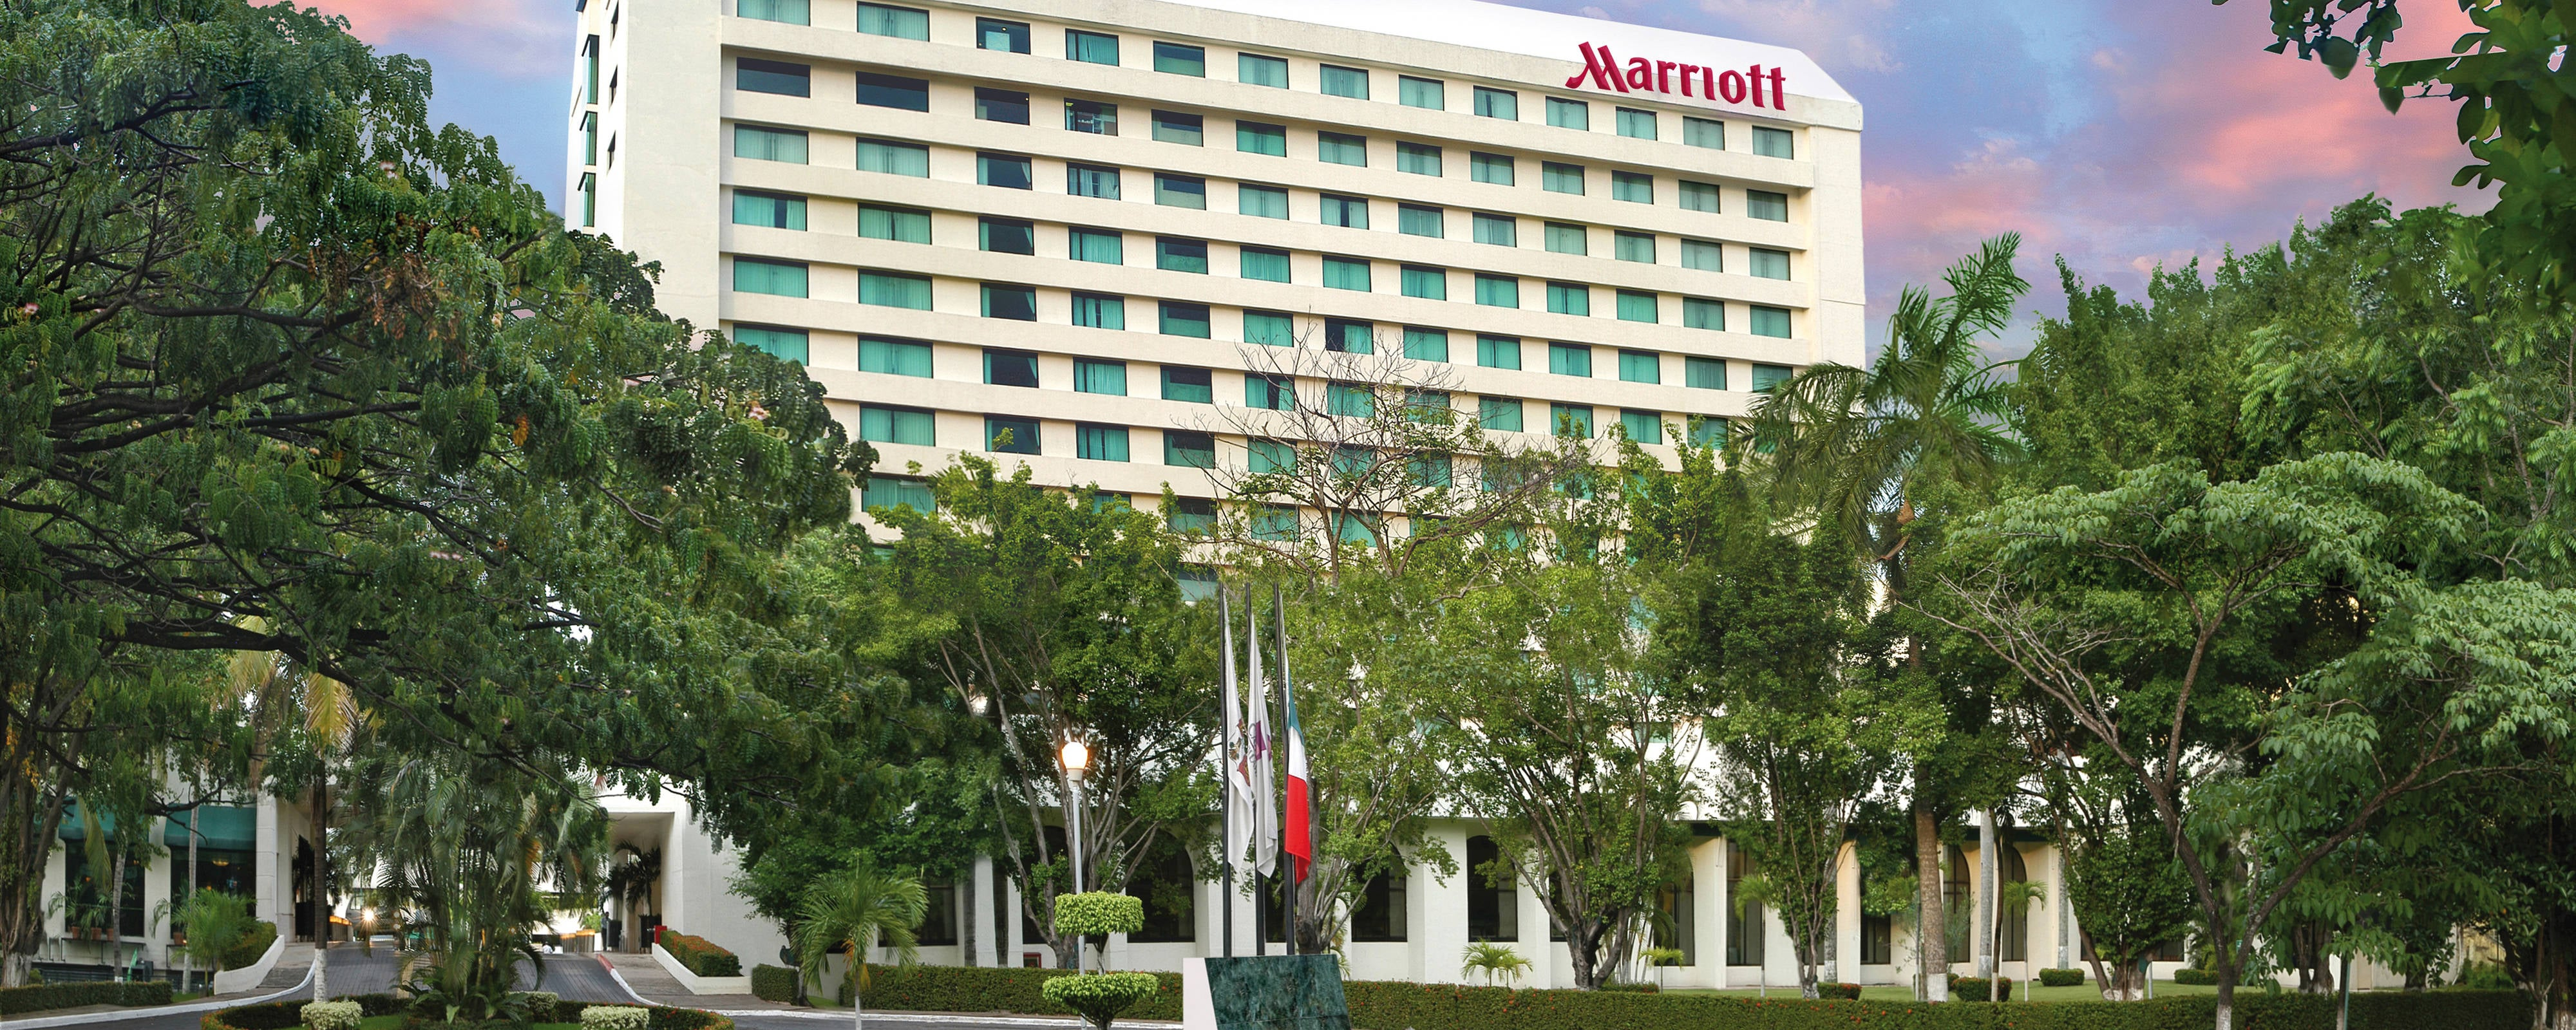 Marriott Hotel in Villahermosa